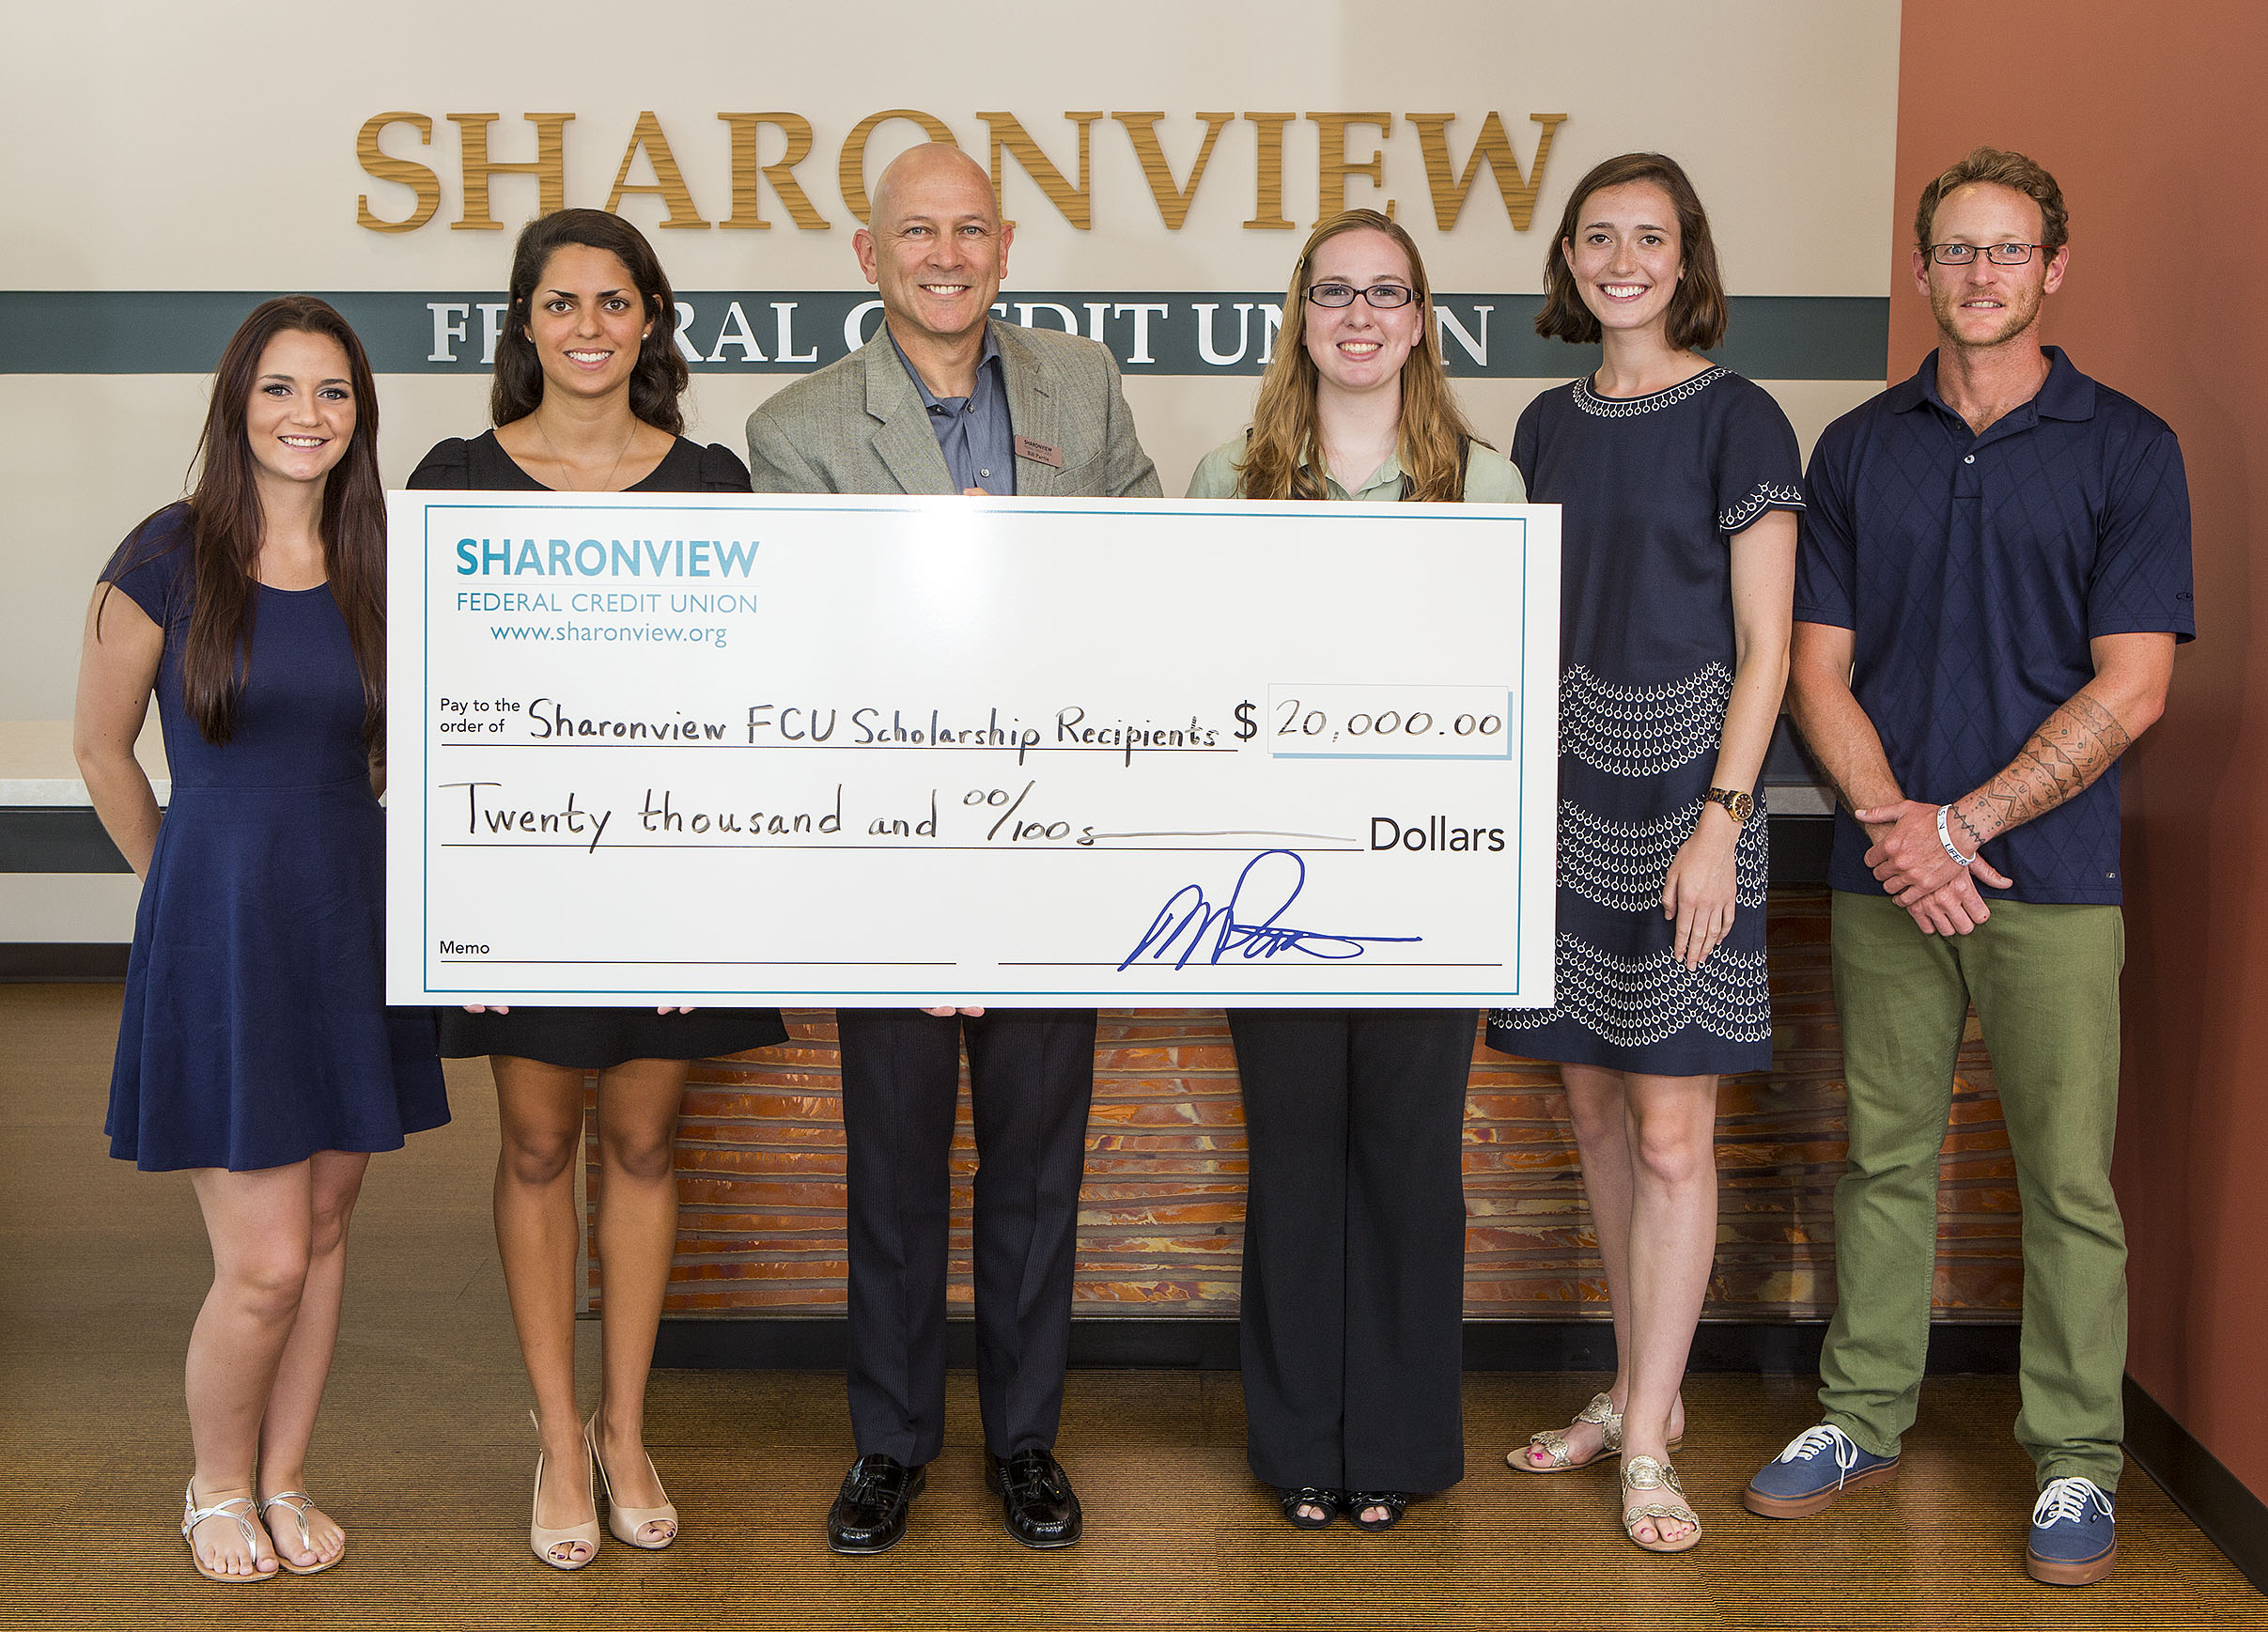 Sharonview Credit Union >> Sharonview Federal Credit Union Awards 20 000 In Scholarship Funds